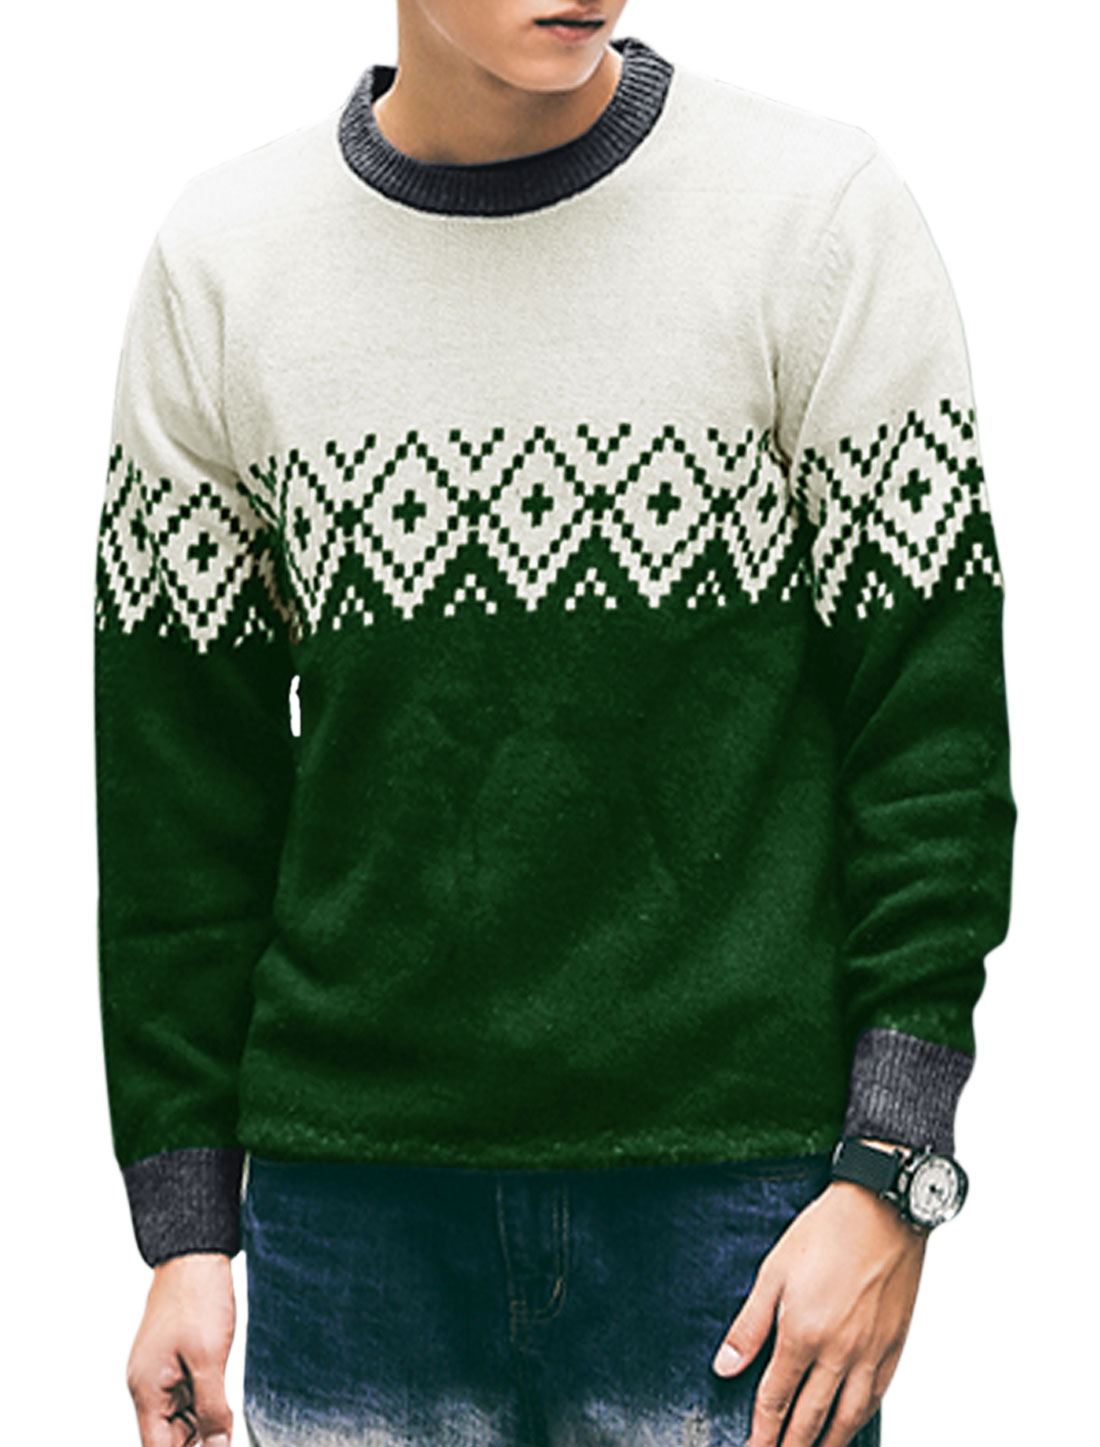 Men Round Neck Slim Fit Geometric Knit Shirt Off White Dusty Green M